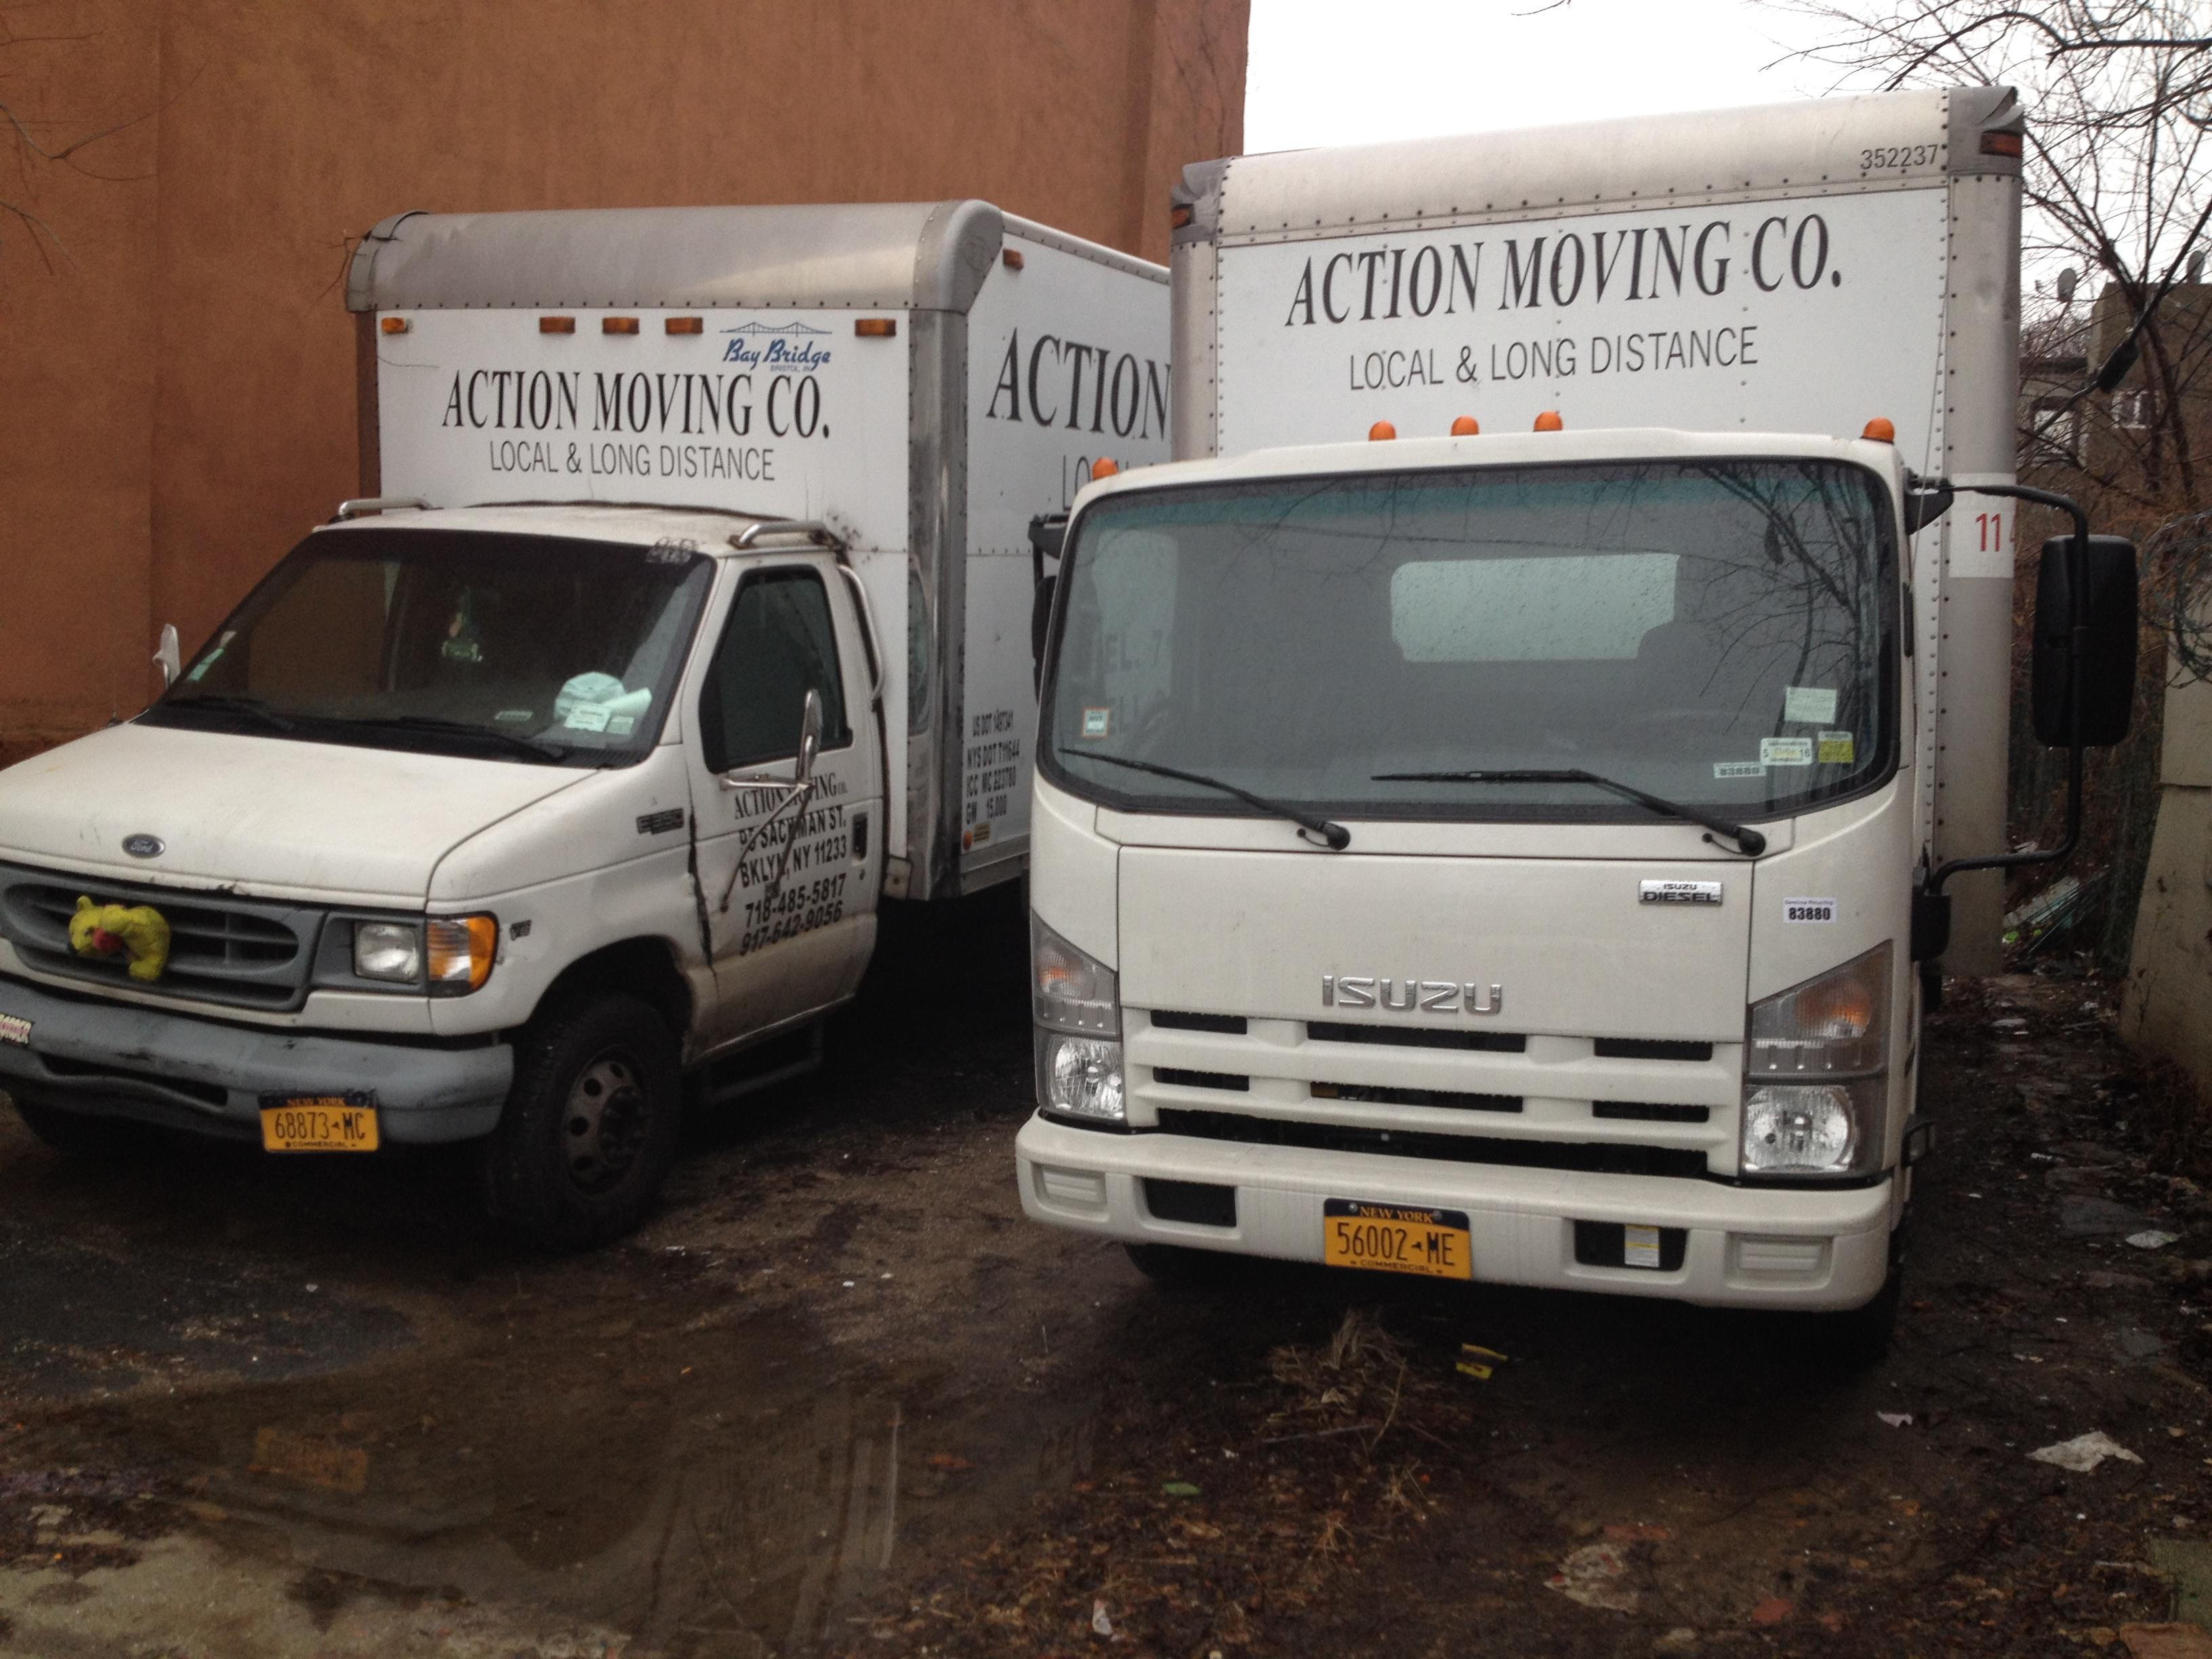 Action Moving Company Local and Long Distance